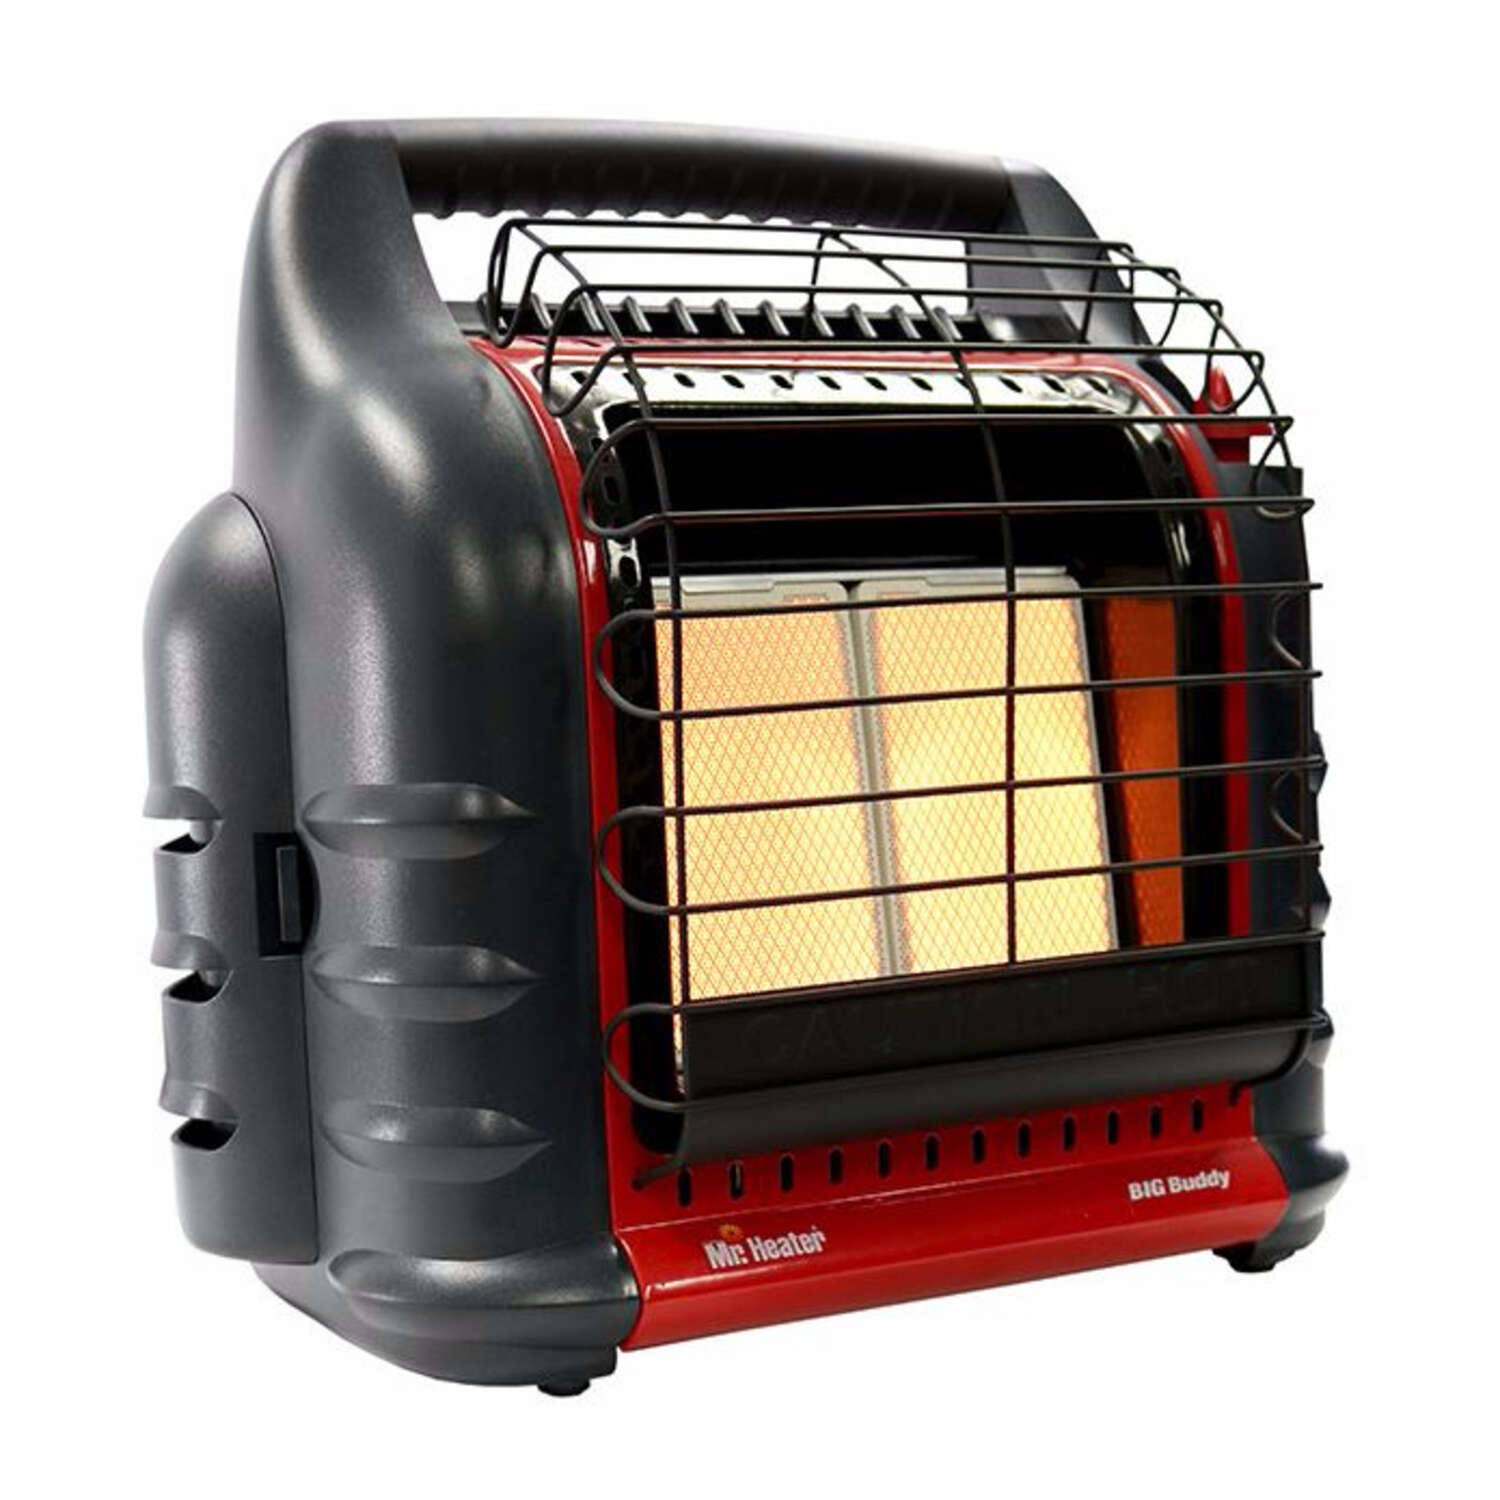 Mr. Heater Big Buddy 18,000 BTU/hr. 450 sq. ft. Radiant Propane Portable Heater